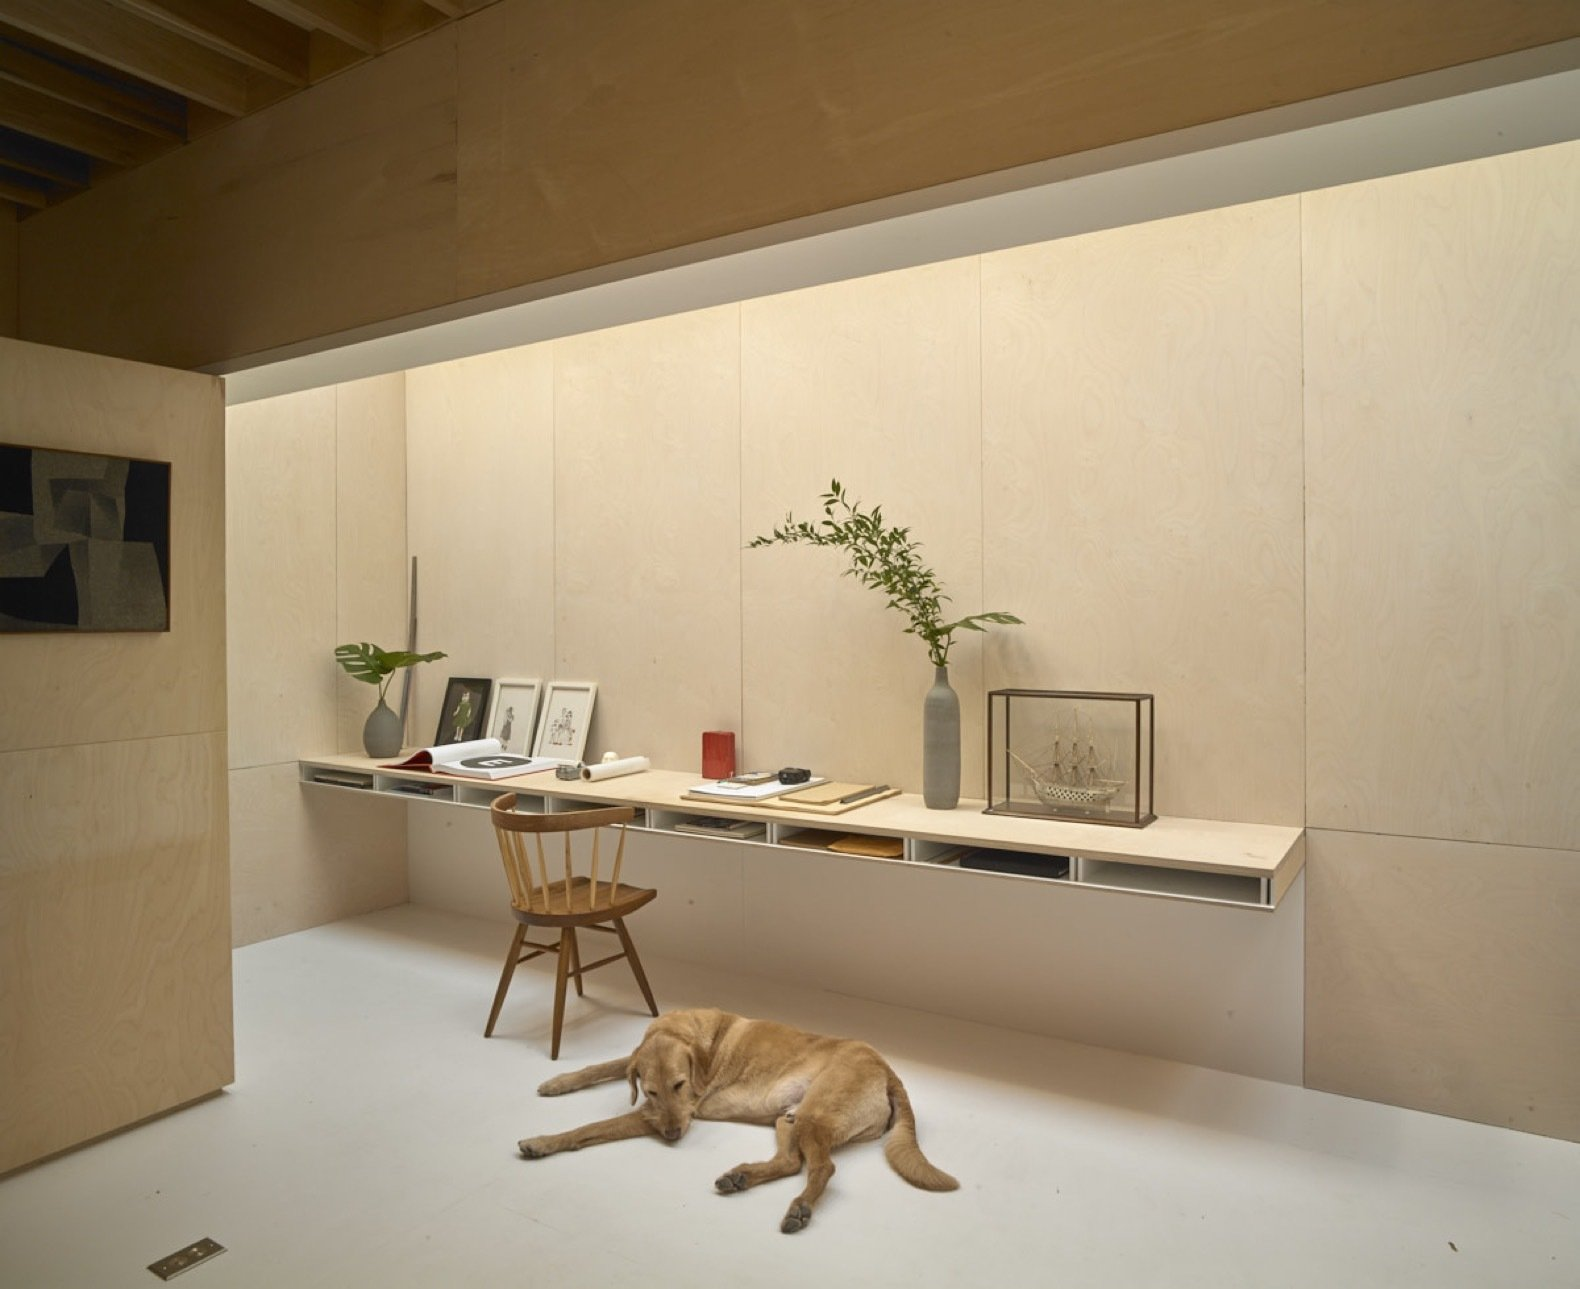 ollie the clients dog rests next to the floating desk built of painted poplar and white washed baltic birch plywood